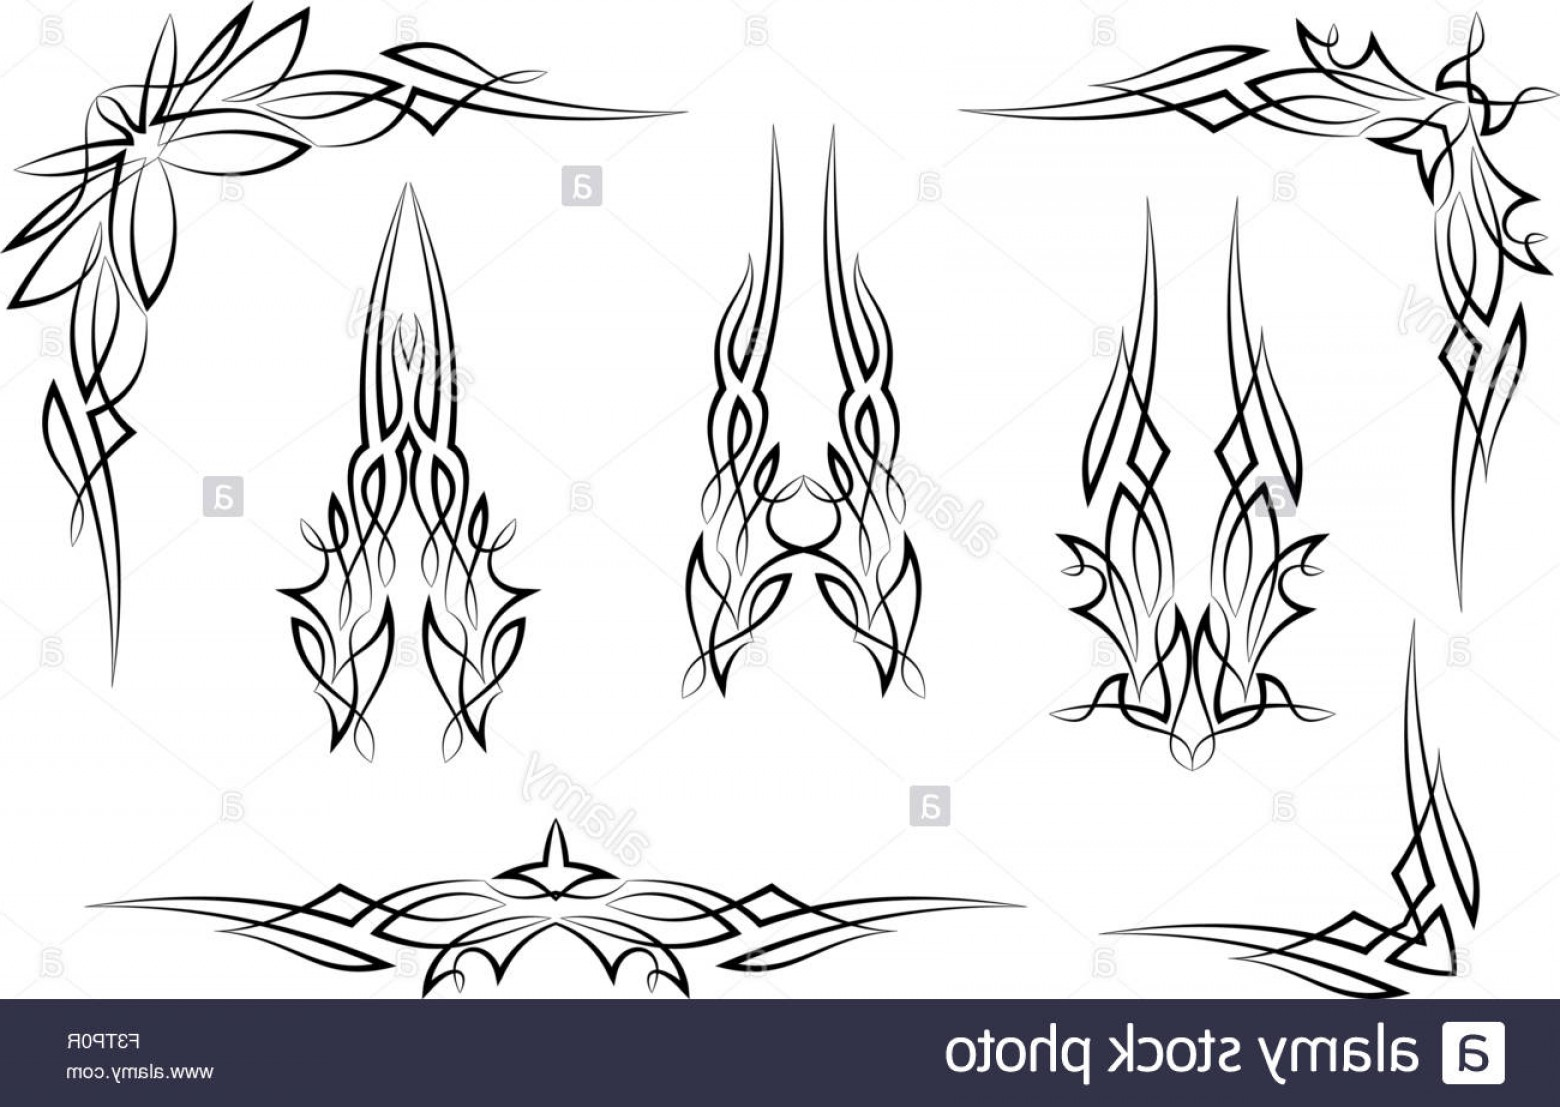 Pinstripe Vector Art: Stock Photo Pinstripe Graphics Corner Border Vinyl Ready Vector Art